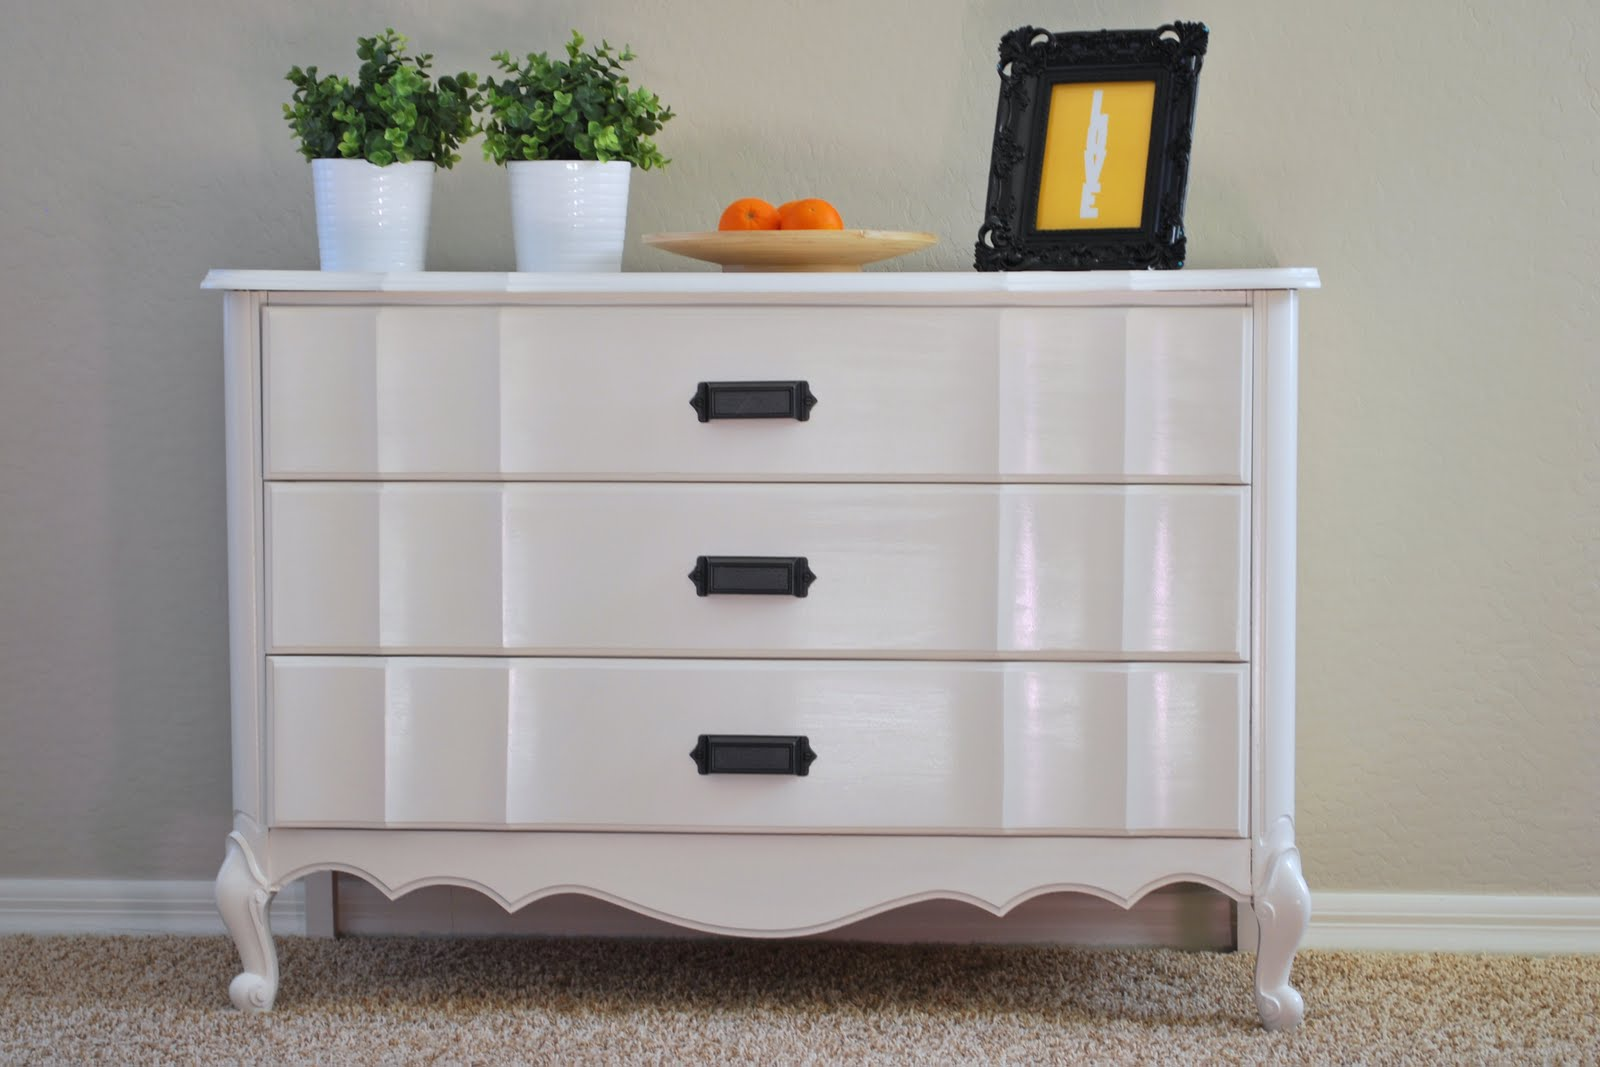 Painting French Provincial Bedroom Furniture Swoon Worthy Vintage June 2011